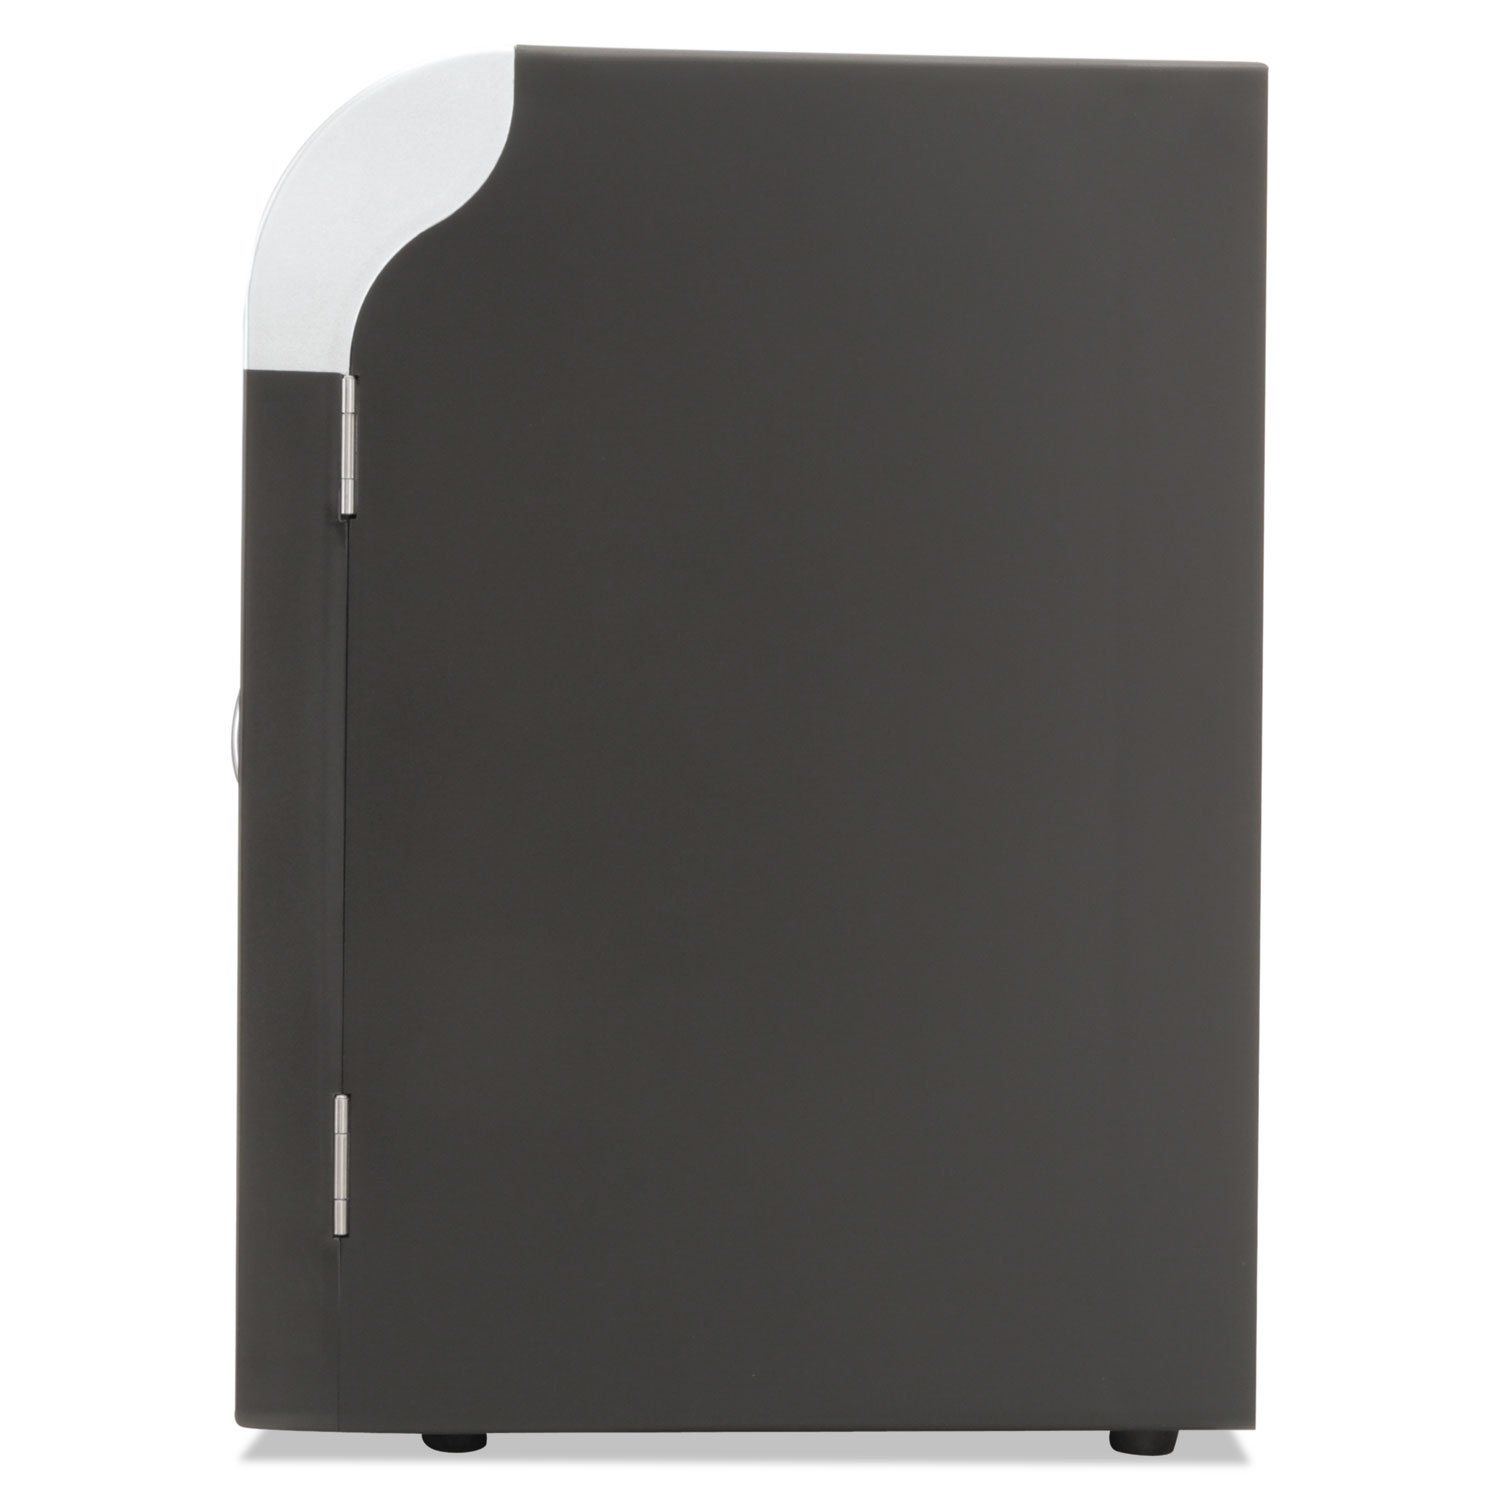 Mind Reader REF01BLK Cube Mini Coffee Station Refrigerator, 0.21 Cu. Ft, Black w/Chrome Handle by EMSREF01BLK (Image #8)